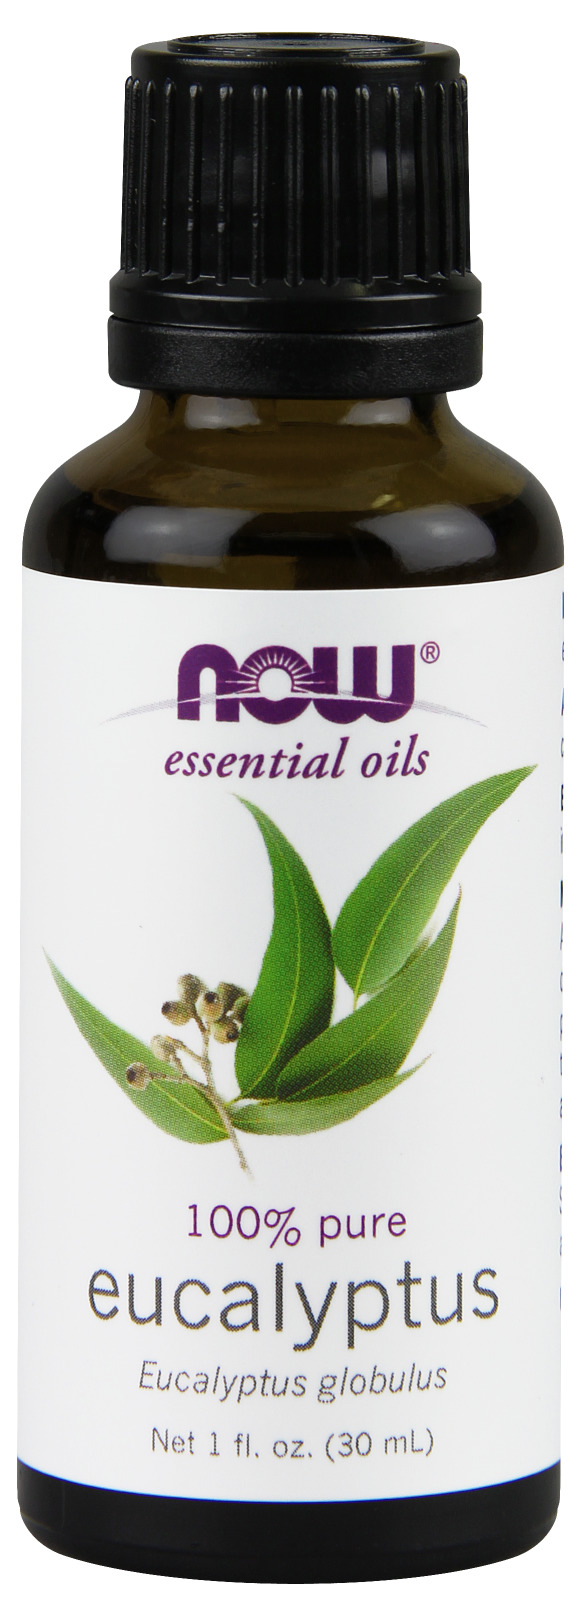 Eucalyptus Oil 1 fl oz (30 ml) by NOW